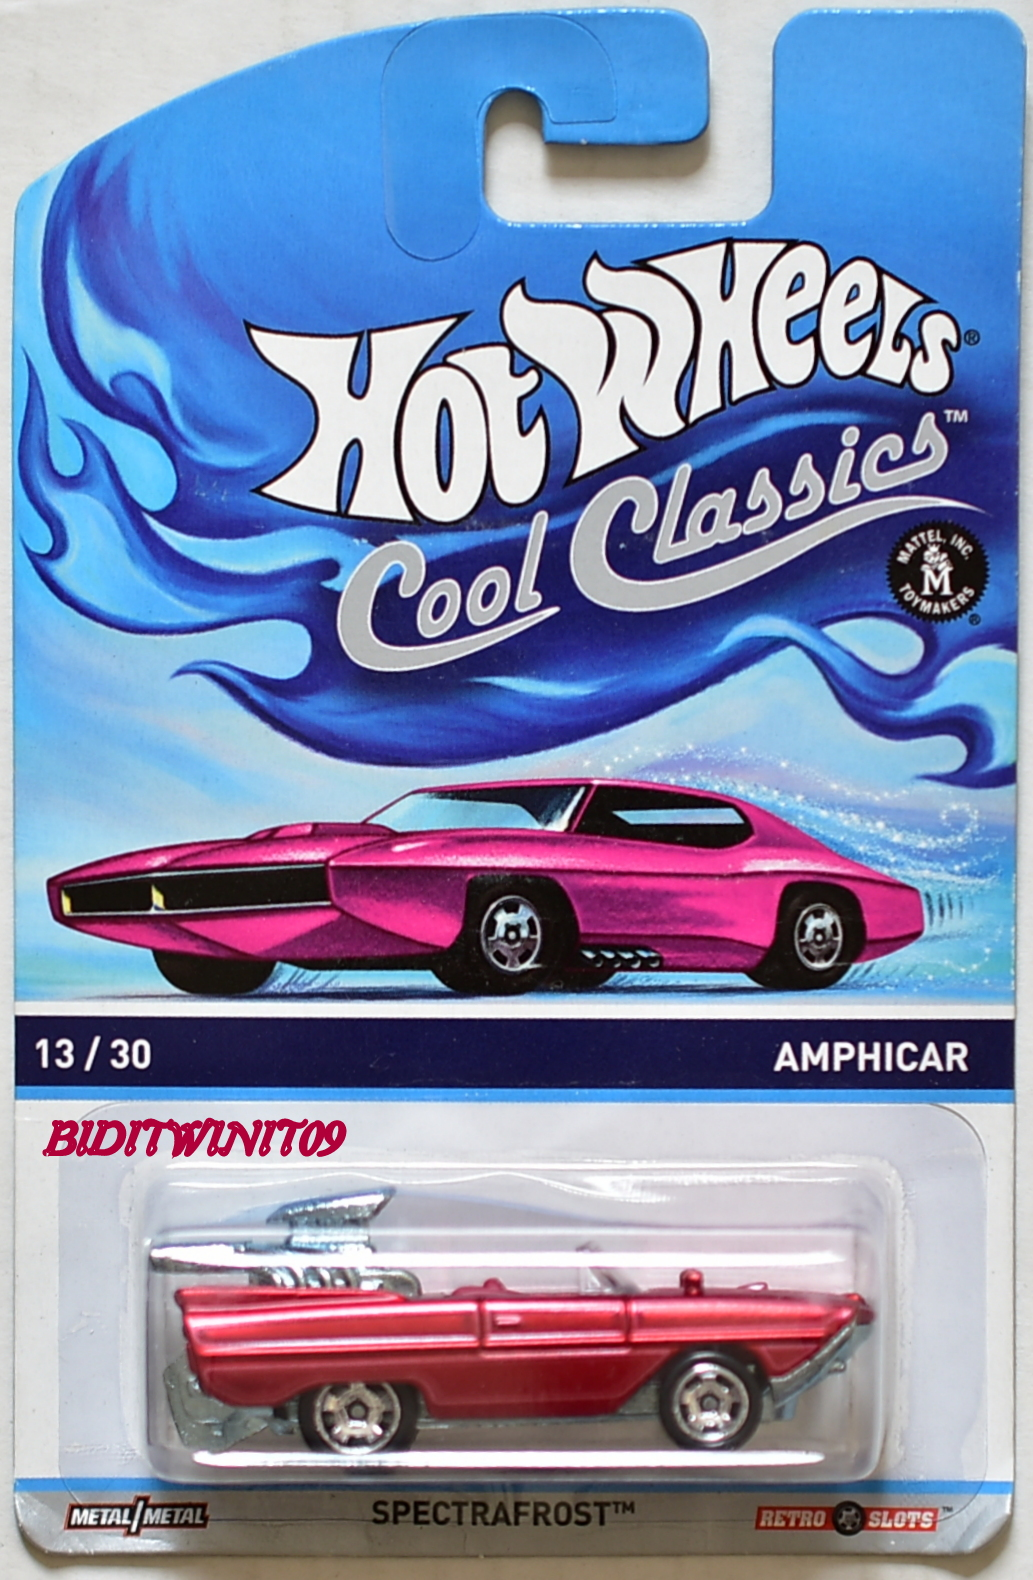 HOT WHEELS COOL CLASSICS SPECTRAFROST AMPHICAR #13/30 RED E+